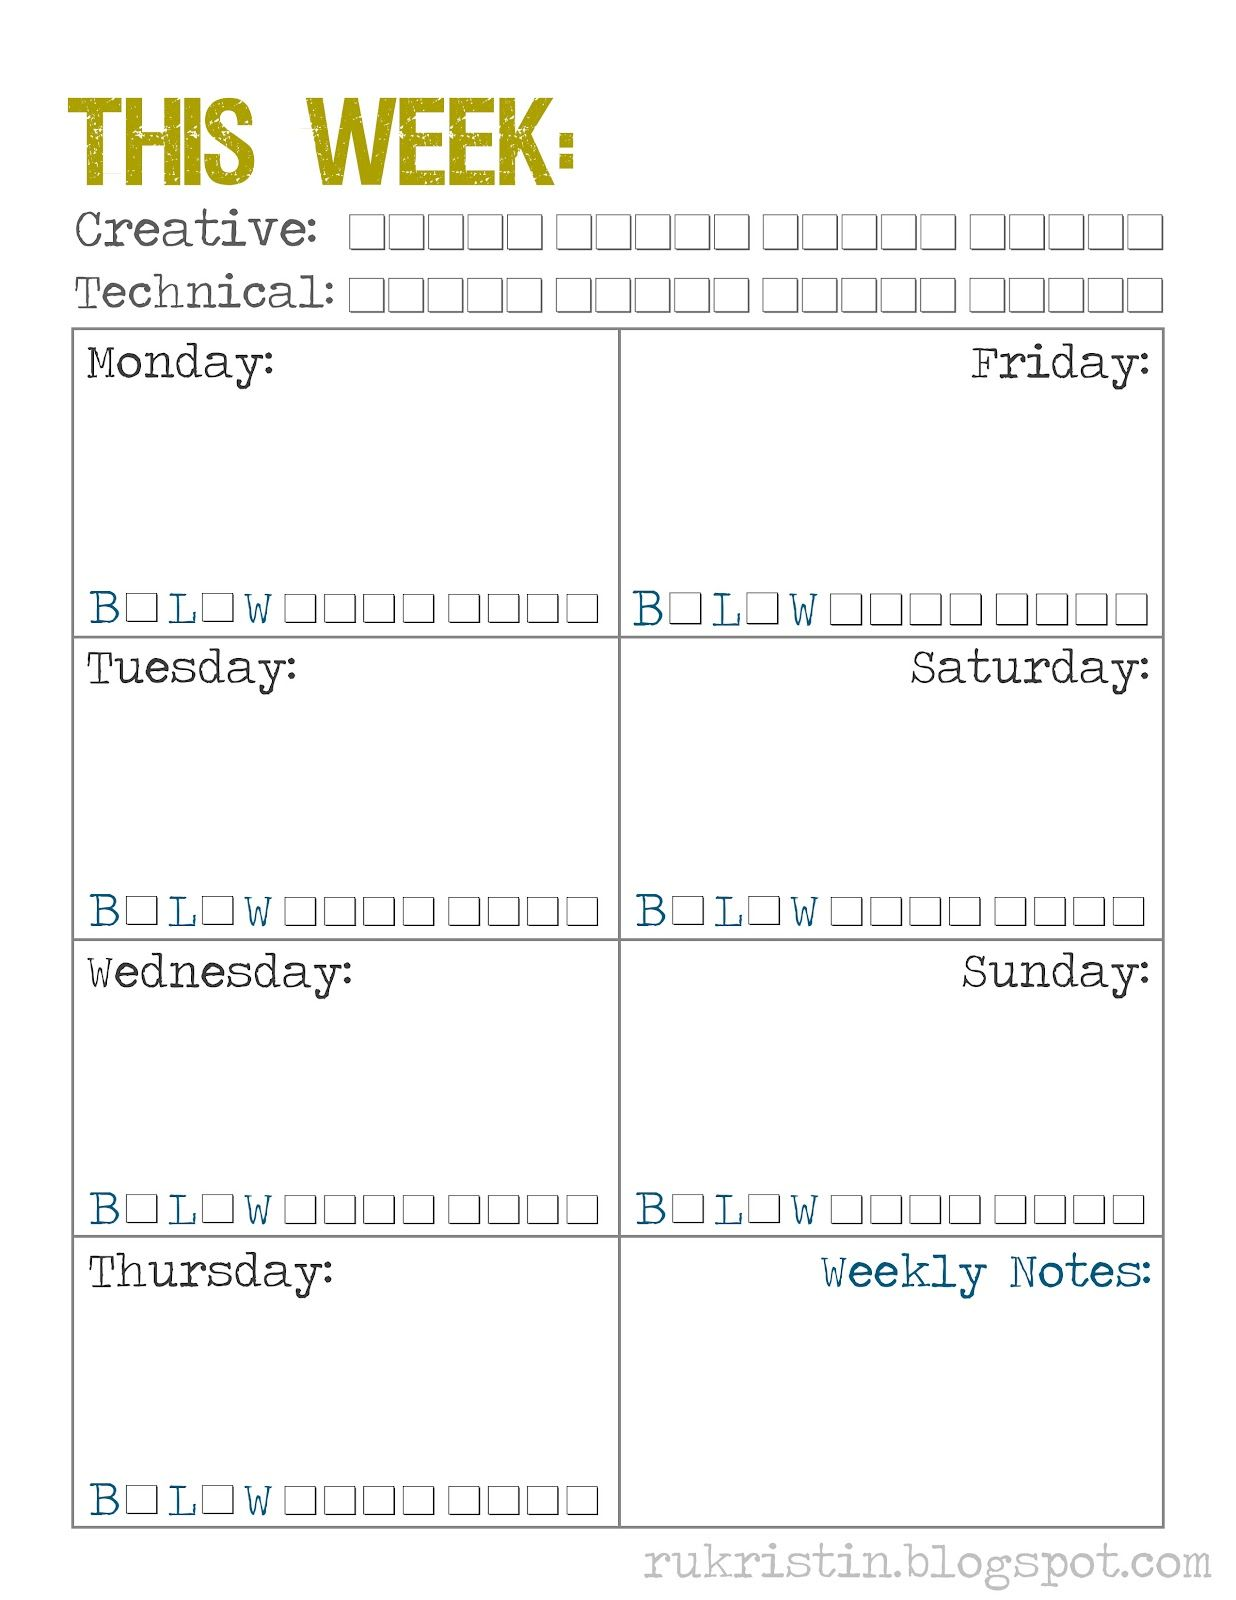 Great Calendar Ideas : Free printable weekly calendar template with great ideas